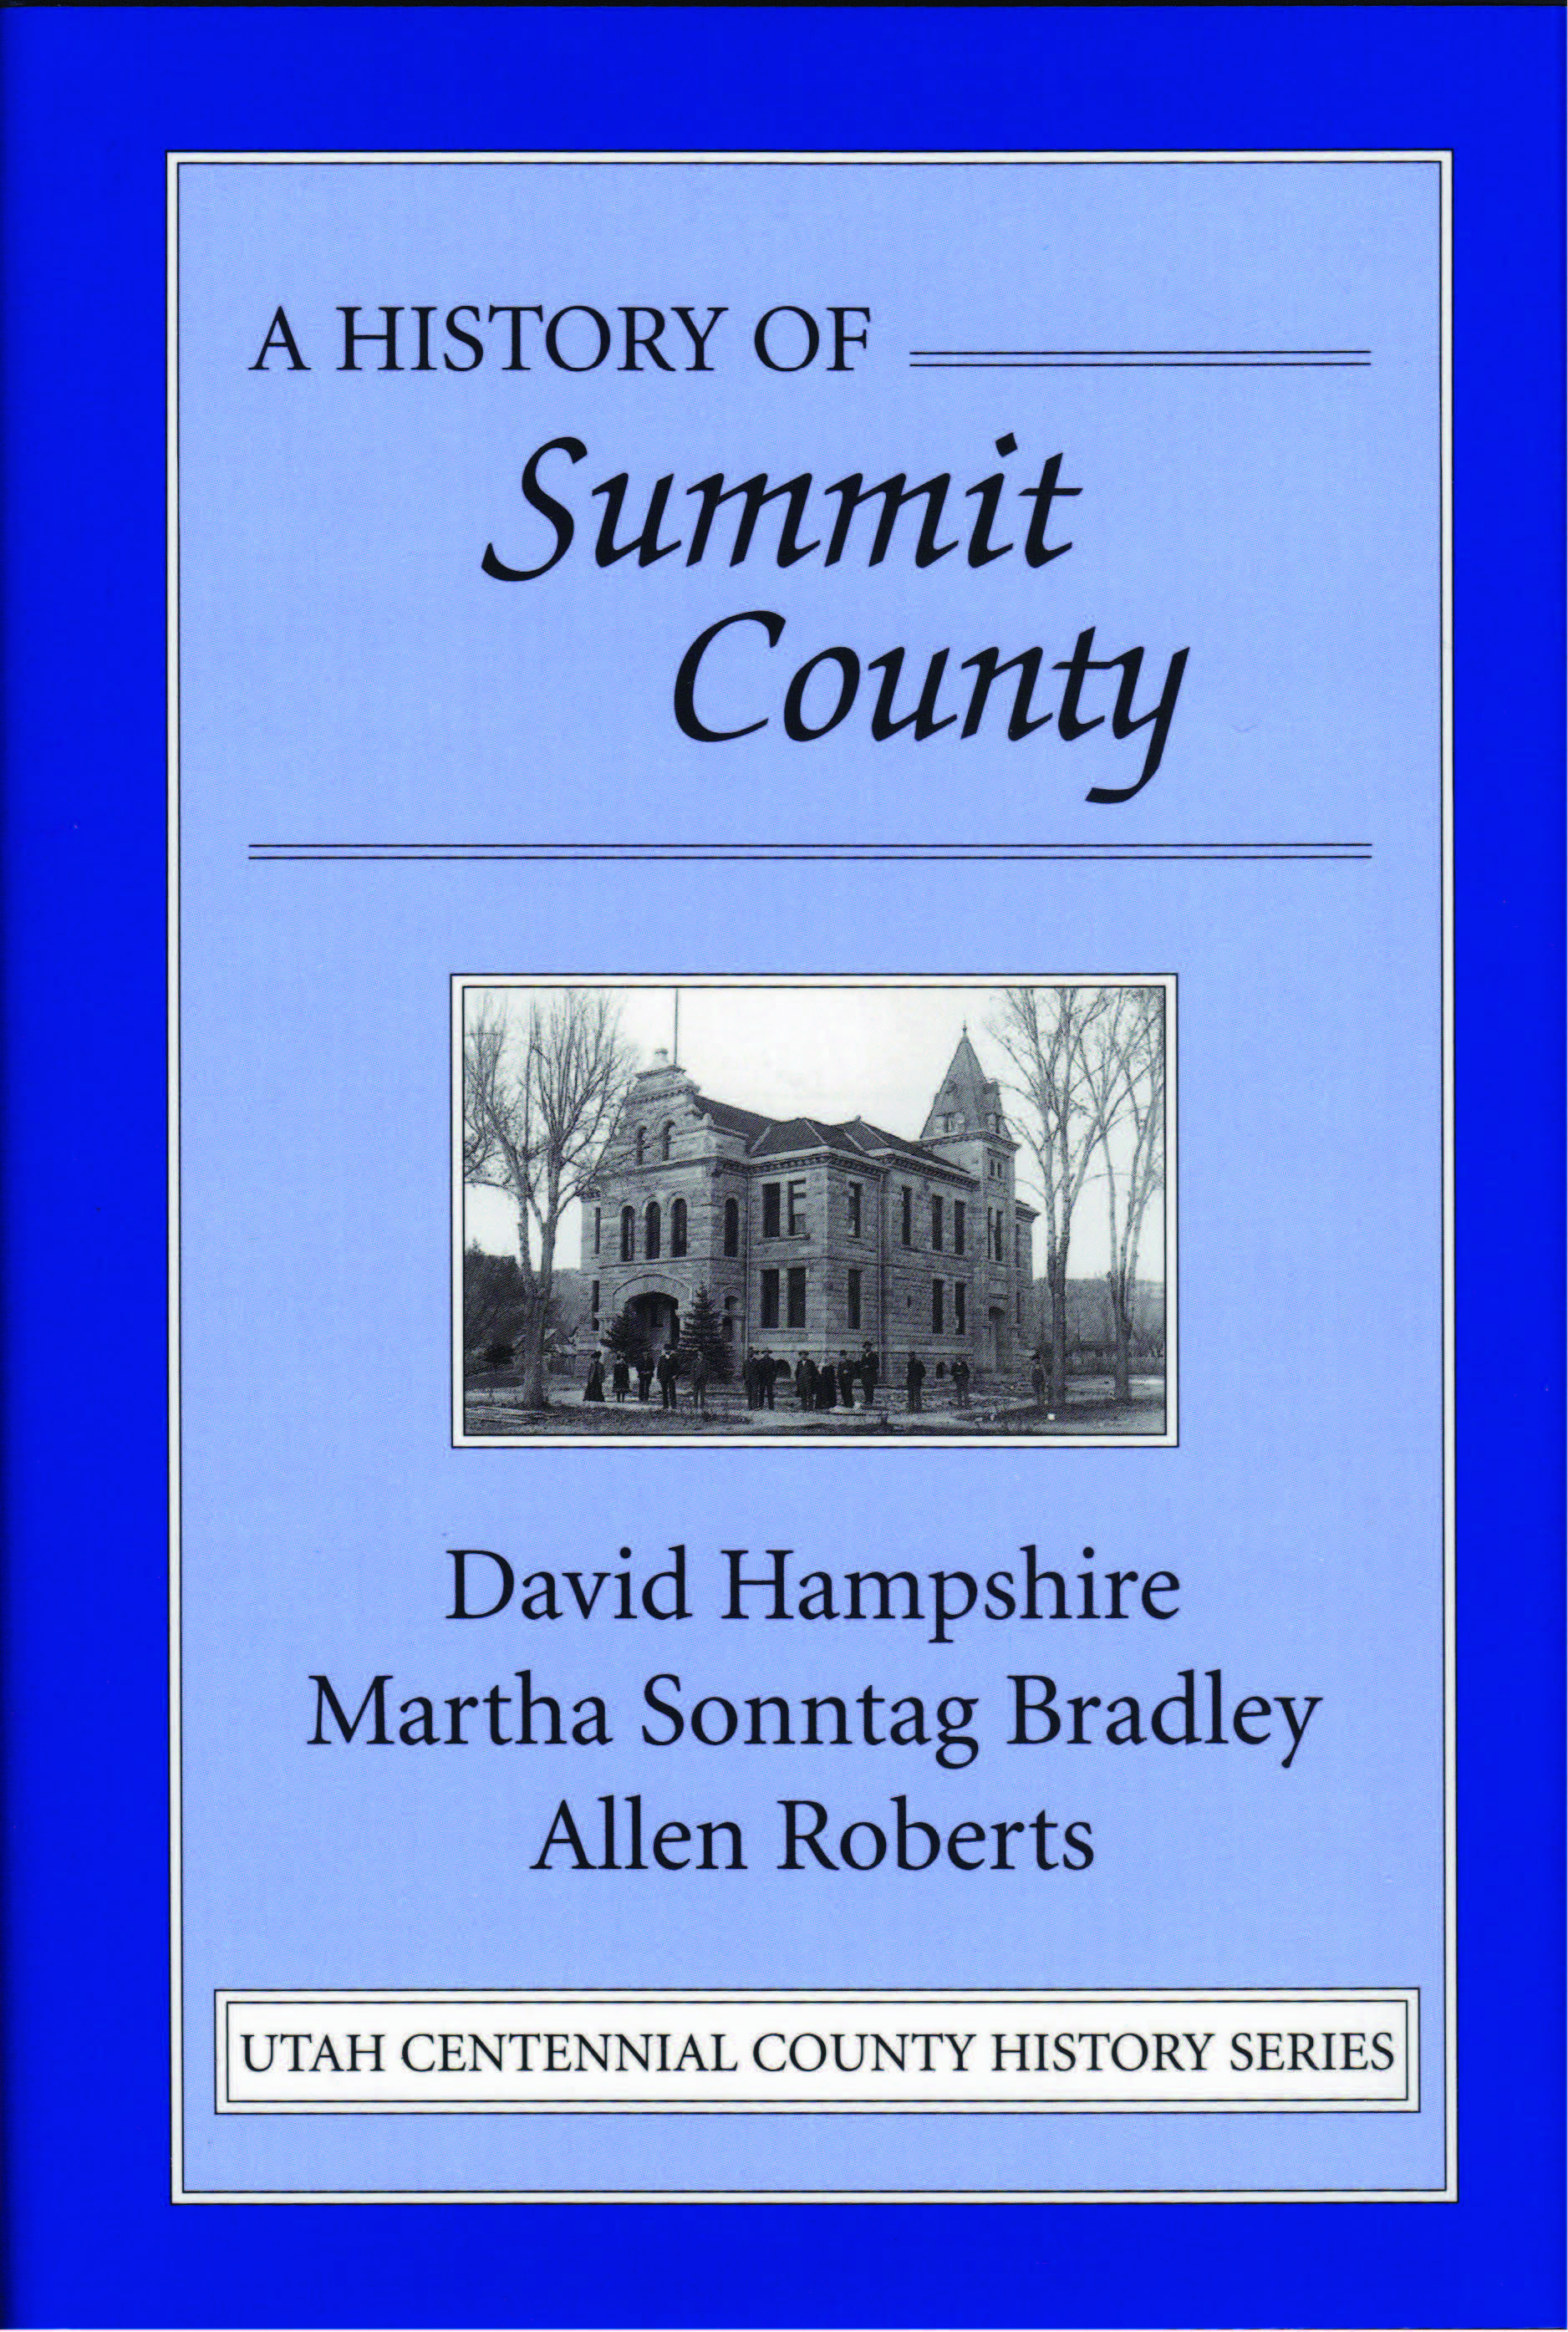 The History of Summit County